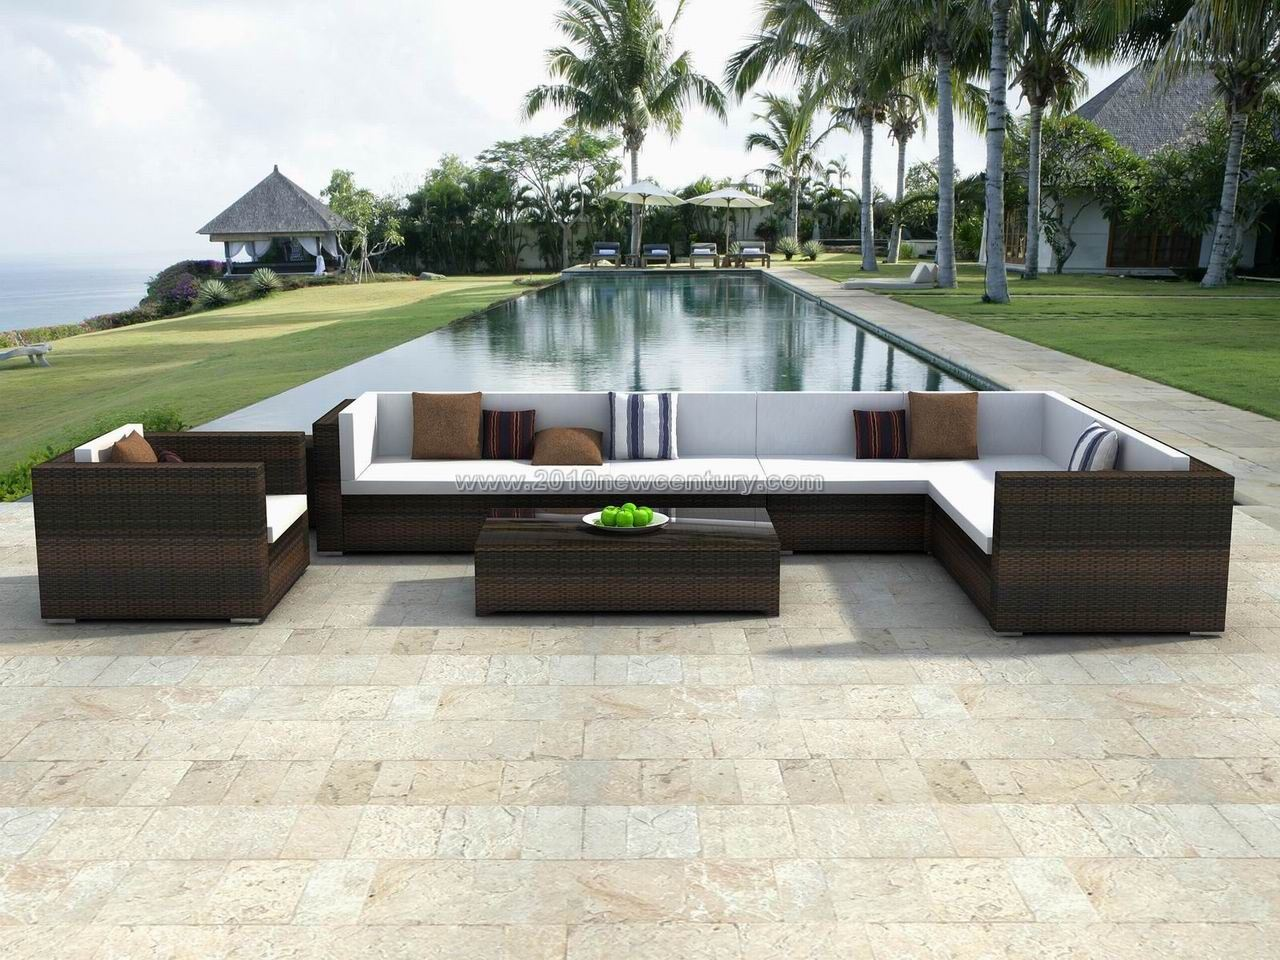 China wicker furniture outdoor furniture rattan for Outdoor garden furniture